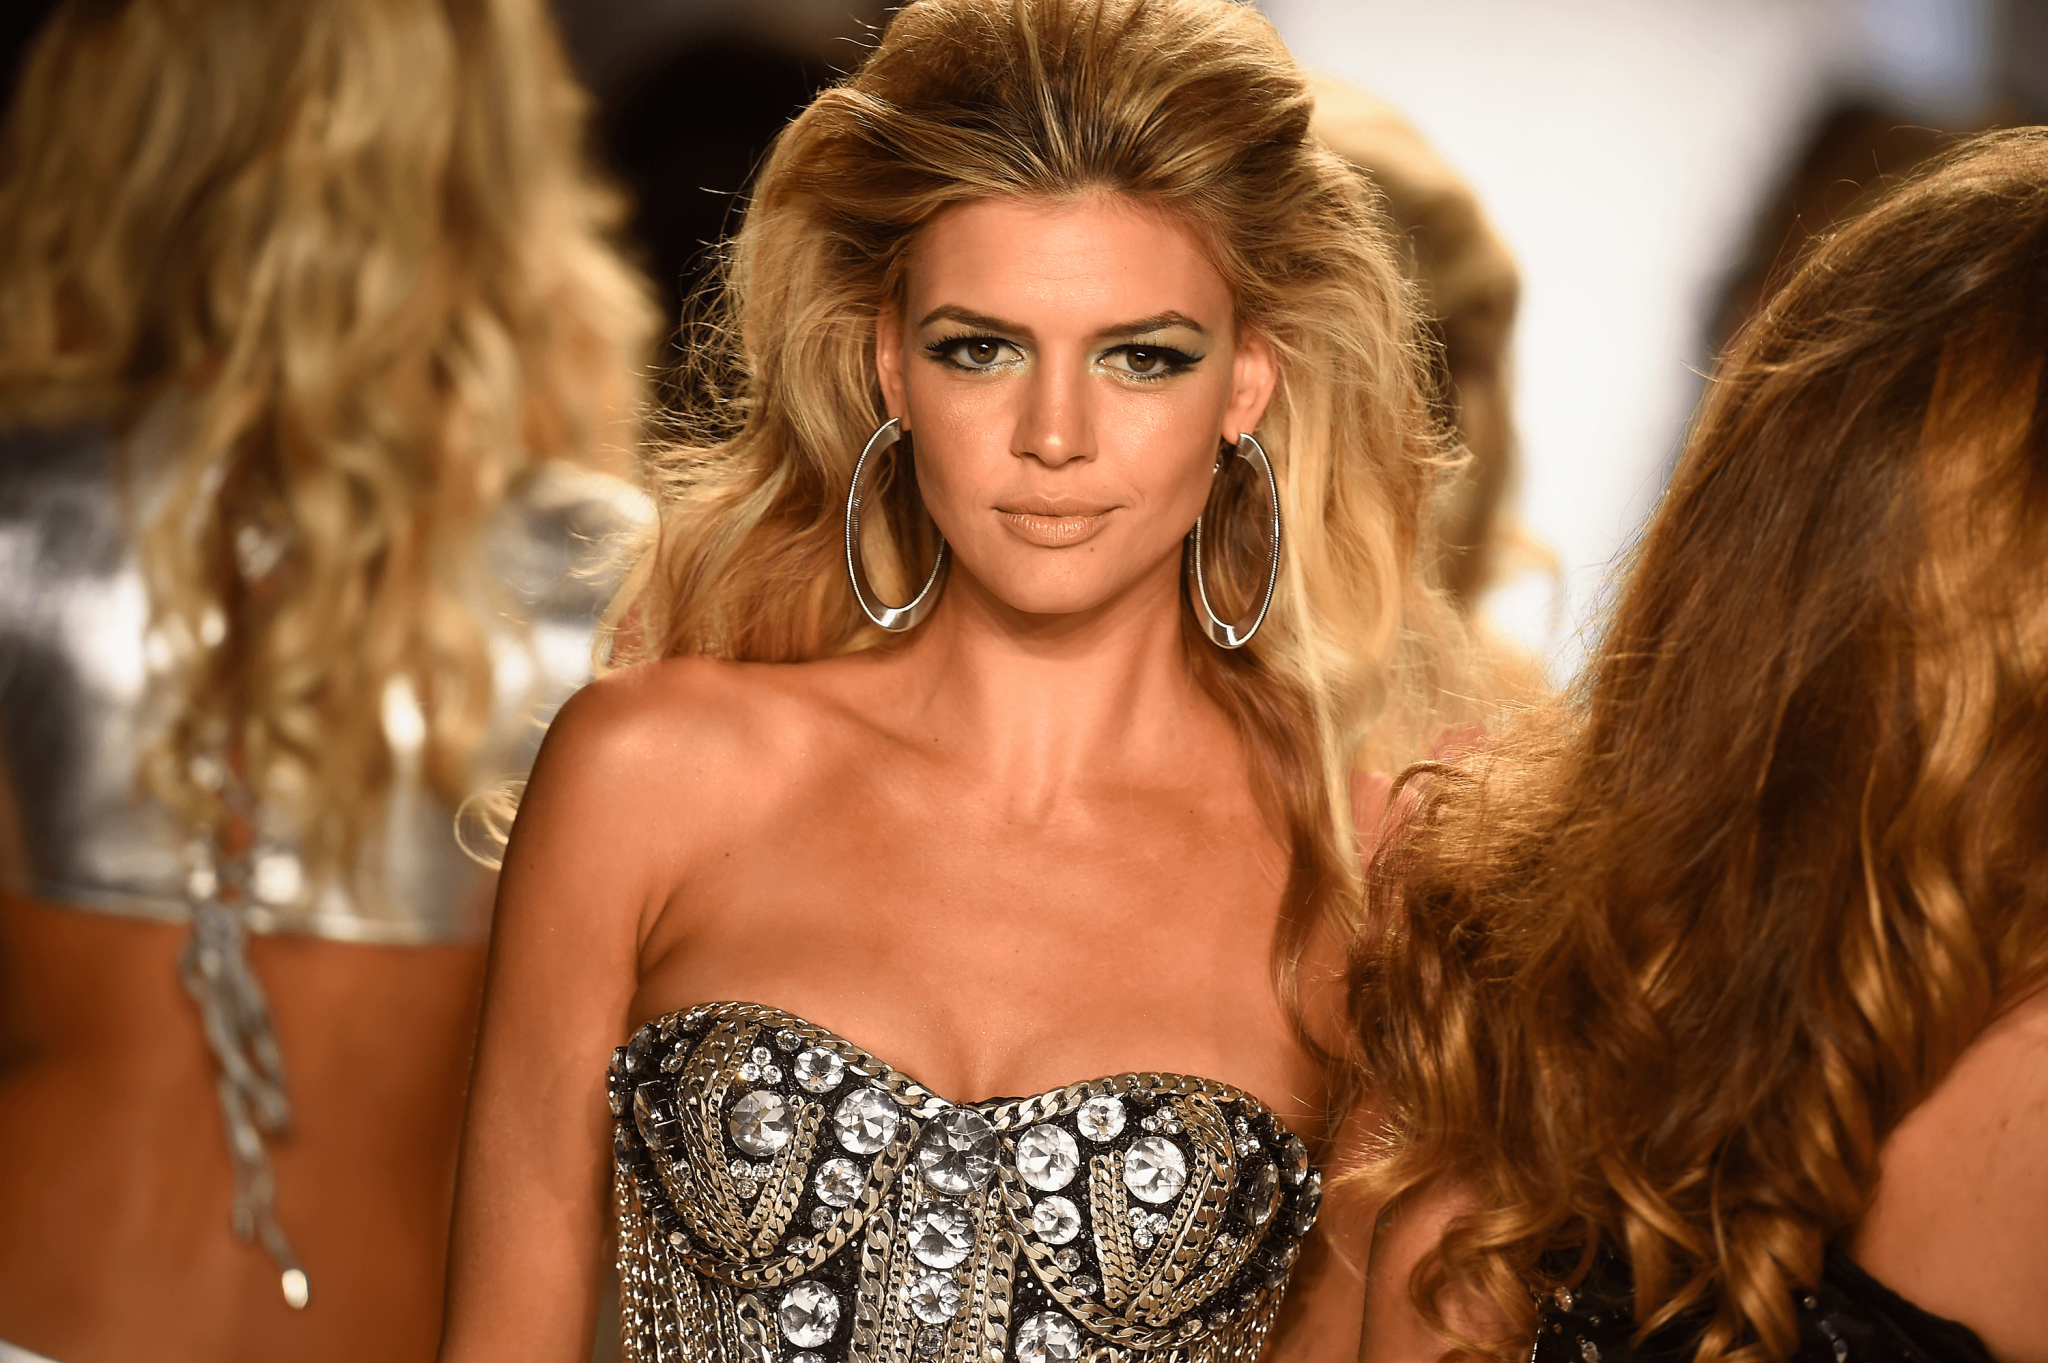 Kelly Rohrbach will take on Pamela Anderson's role in the Baywatch movie